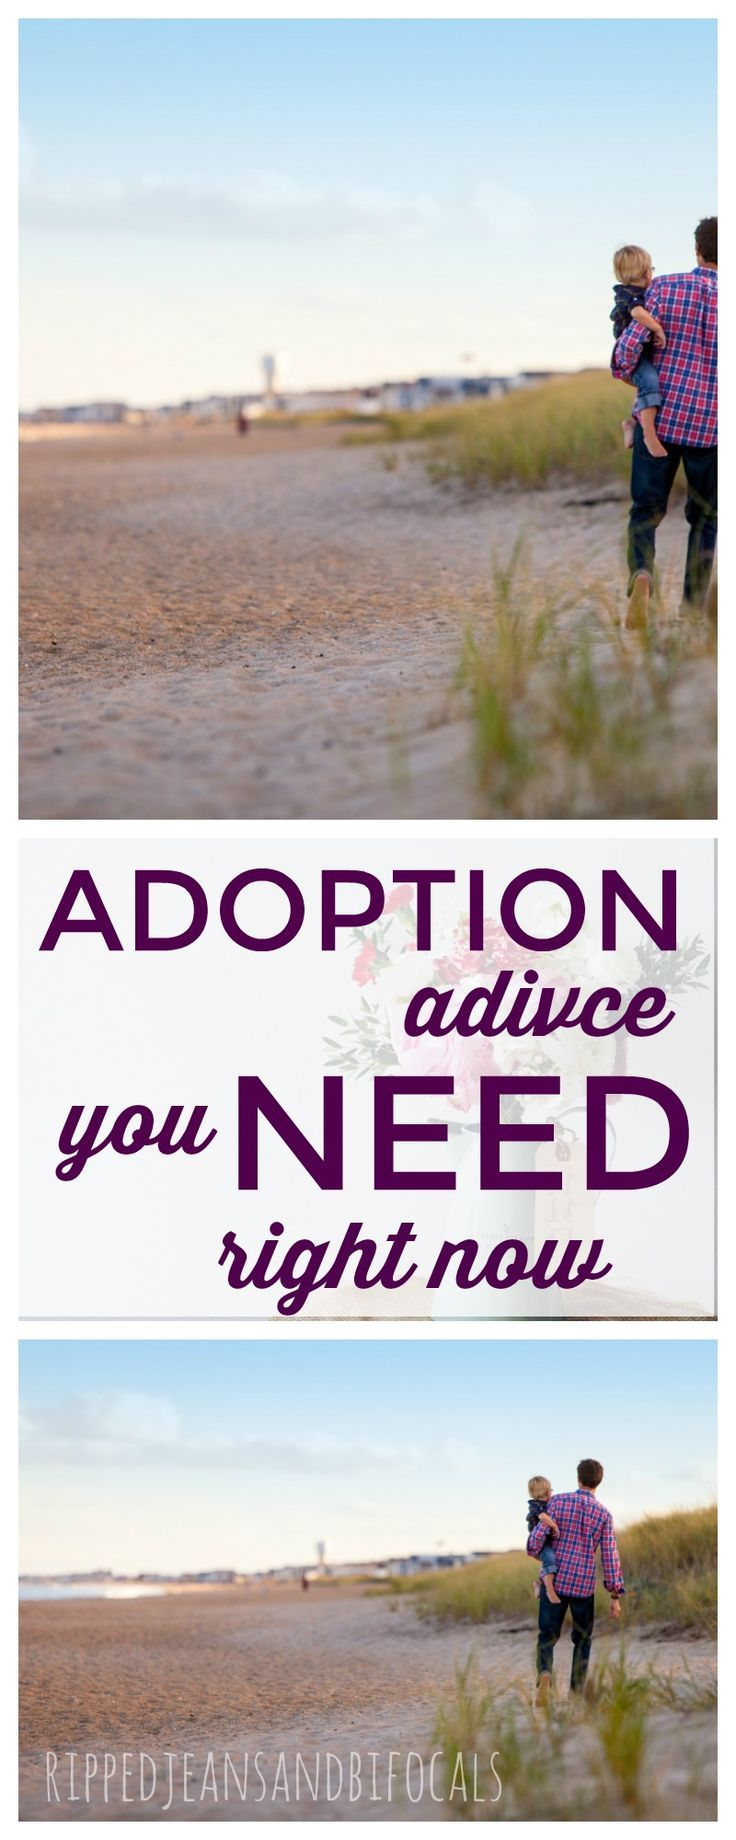 Adoption Advice you need right now. |adoption|domestic adoption|international adoption|China Adoption|Adoption blogs|China Adoption blogs|Adoption blogger|Adoption tips|adoption advice|adoption mentors|